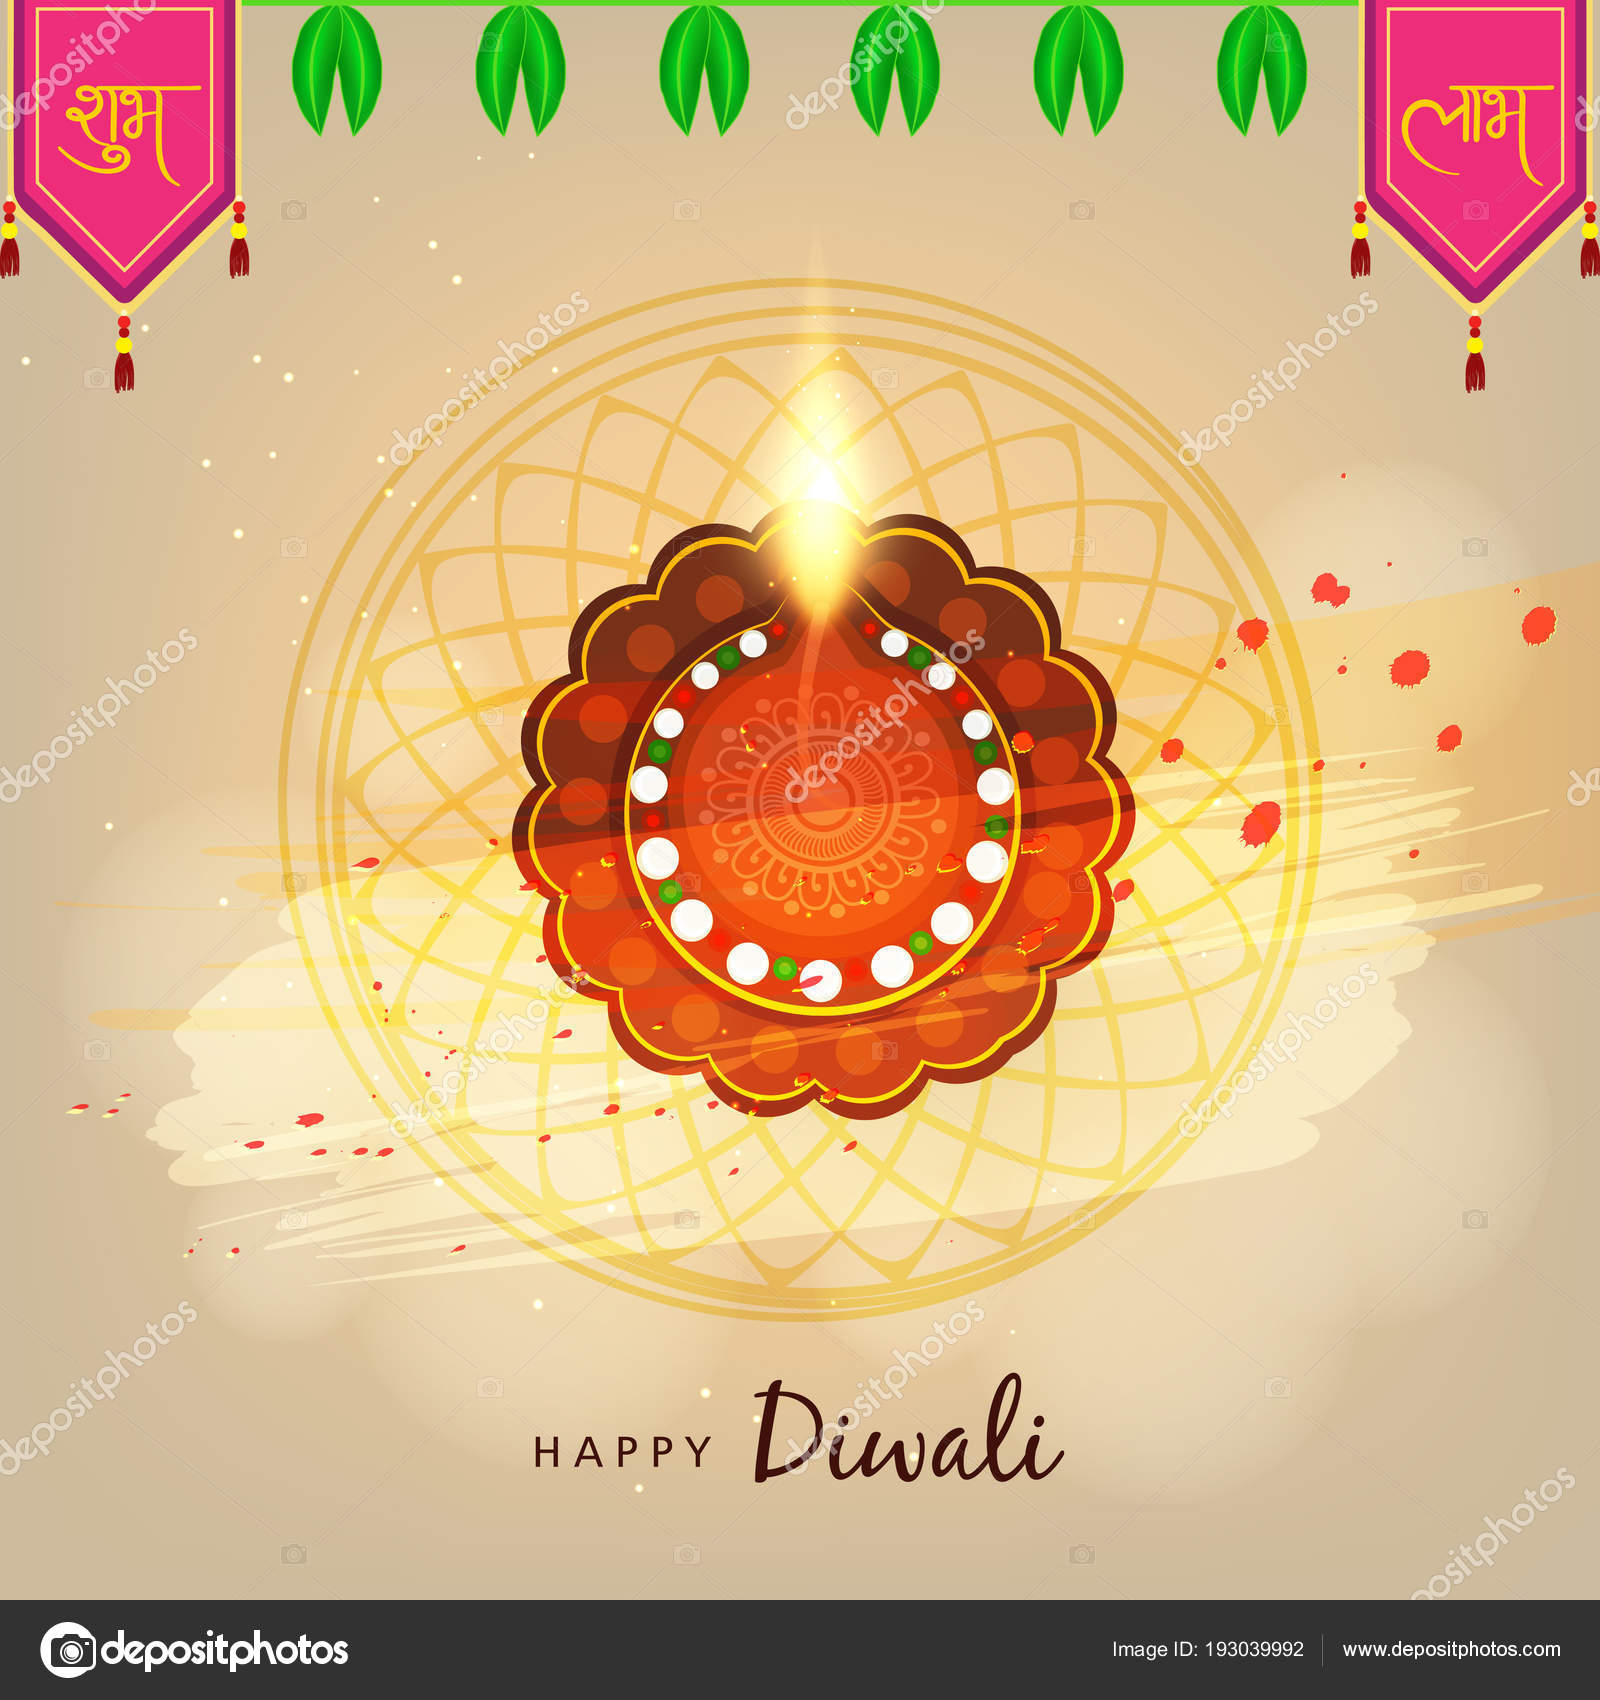 Creative greeting card design happy deepavali festival celebration creative greeting card design for happy deepavali festival celebration on colorful background vector by nekiart m4hsunfo